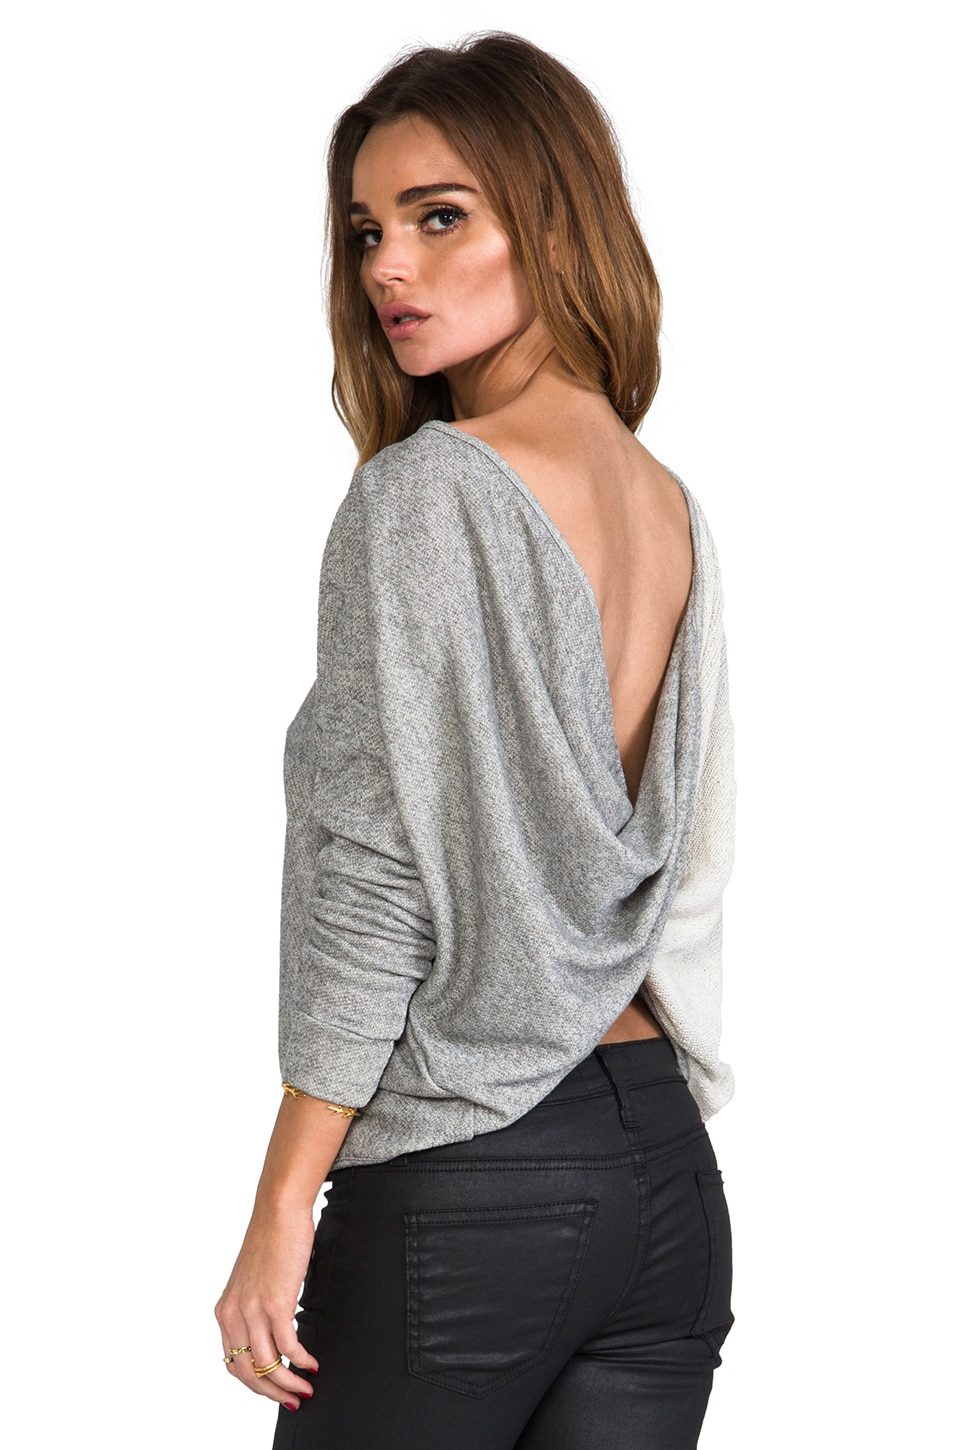 WOODLEIGH Langston Top in Heather